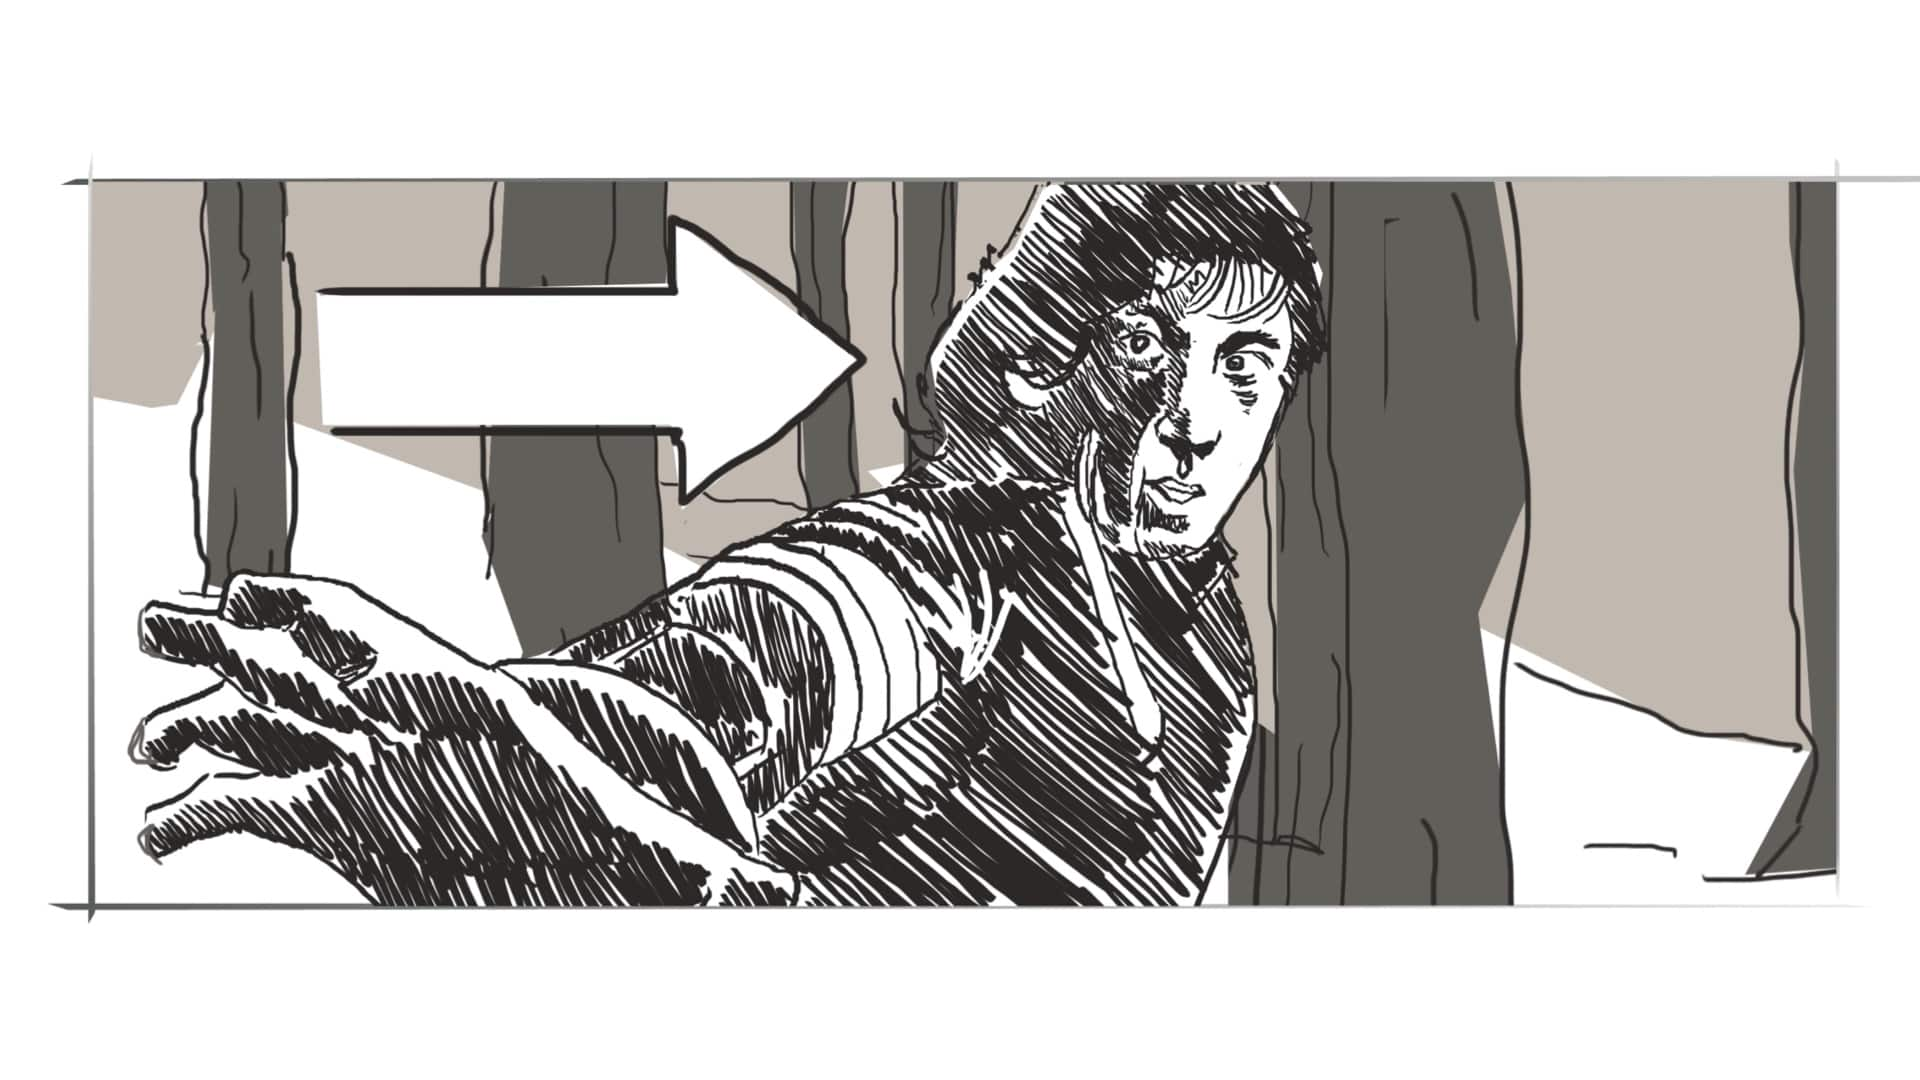 How to Make a Storyboard - Arrows Motion - StudioBinder